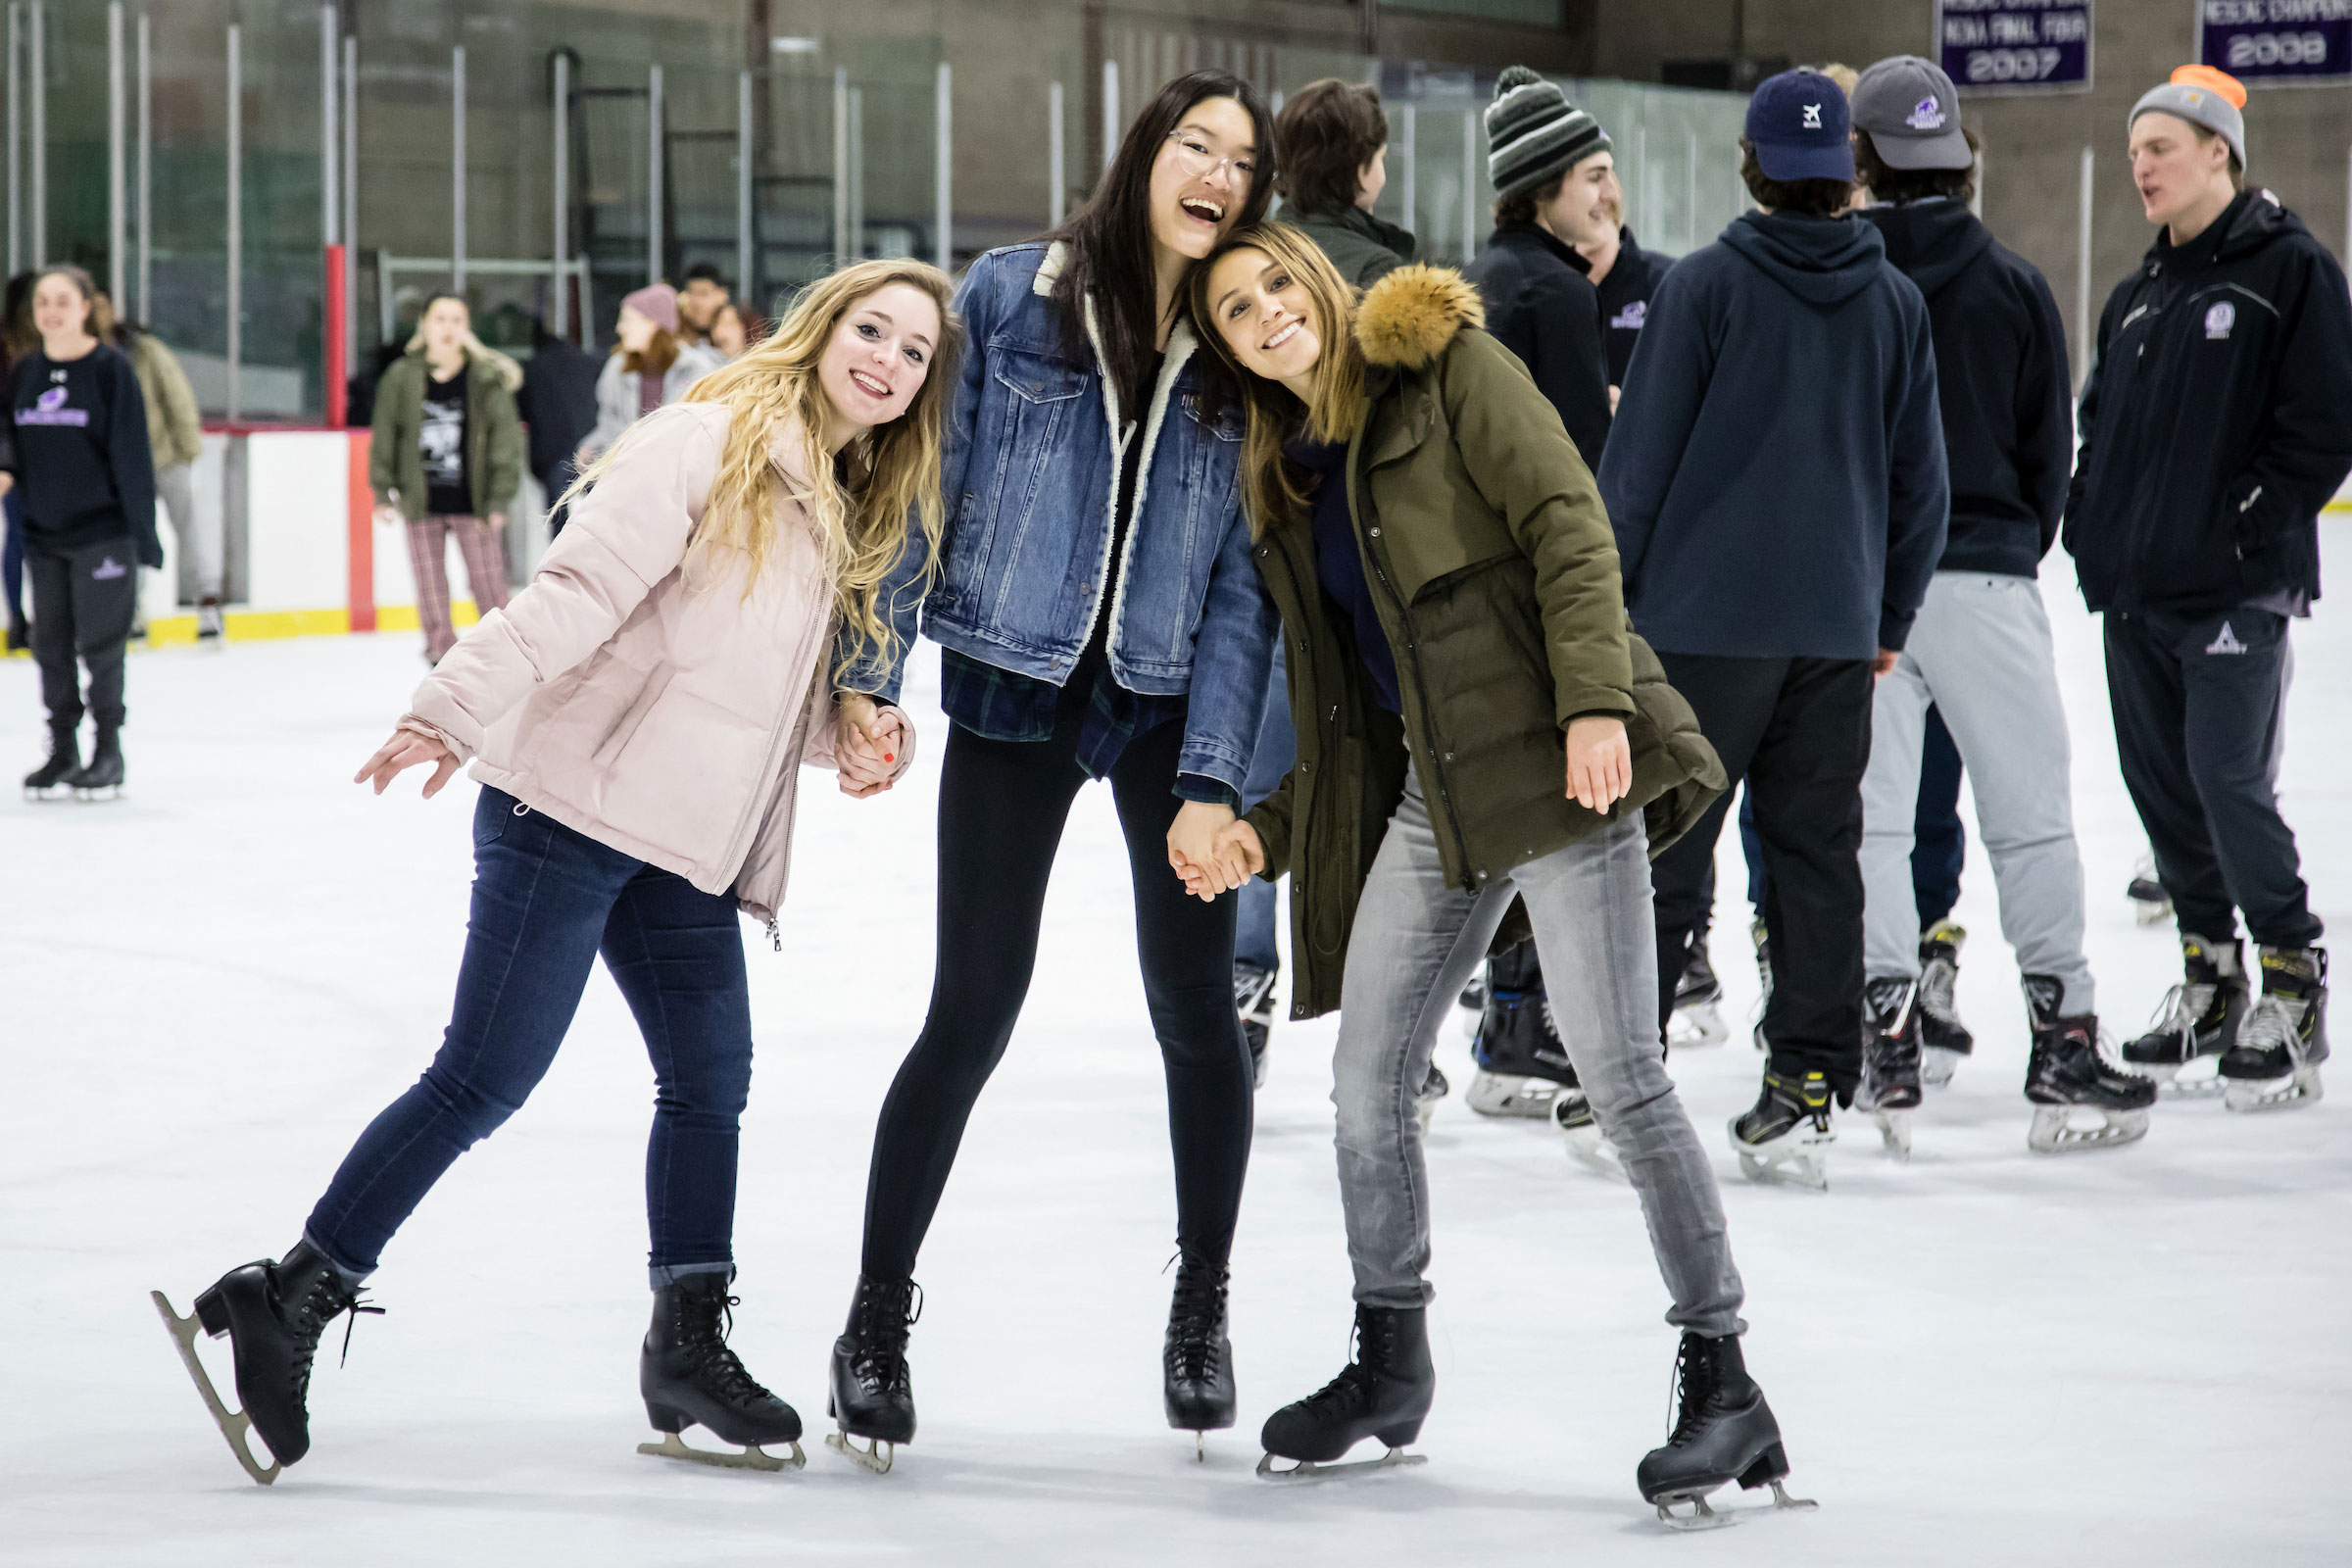 Three women pose together on the ice skating rink